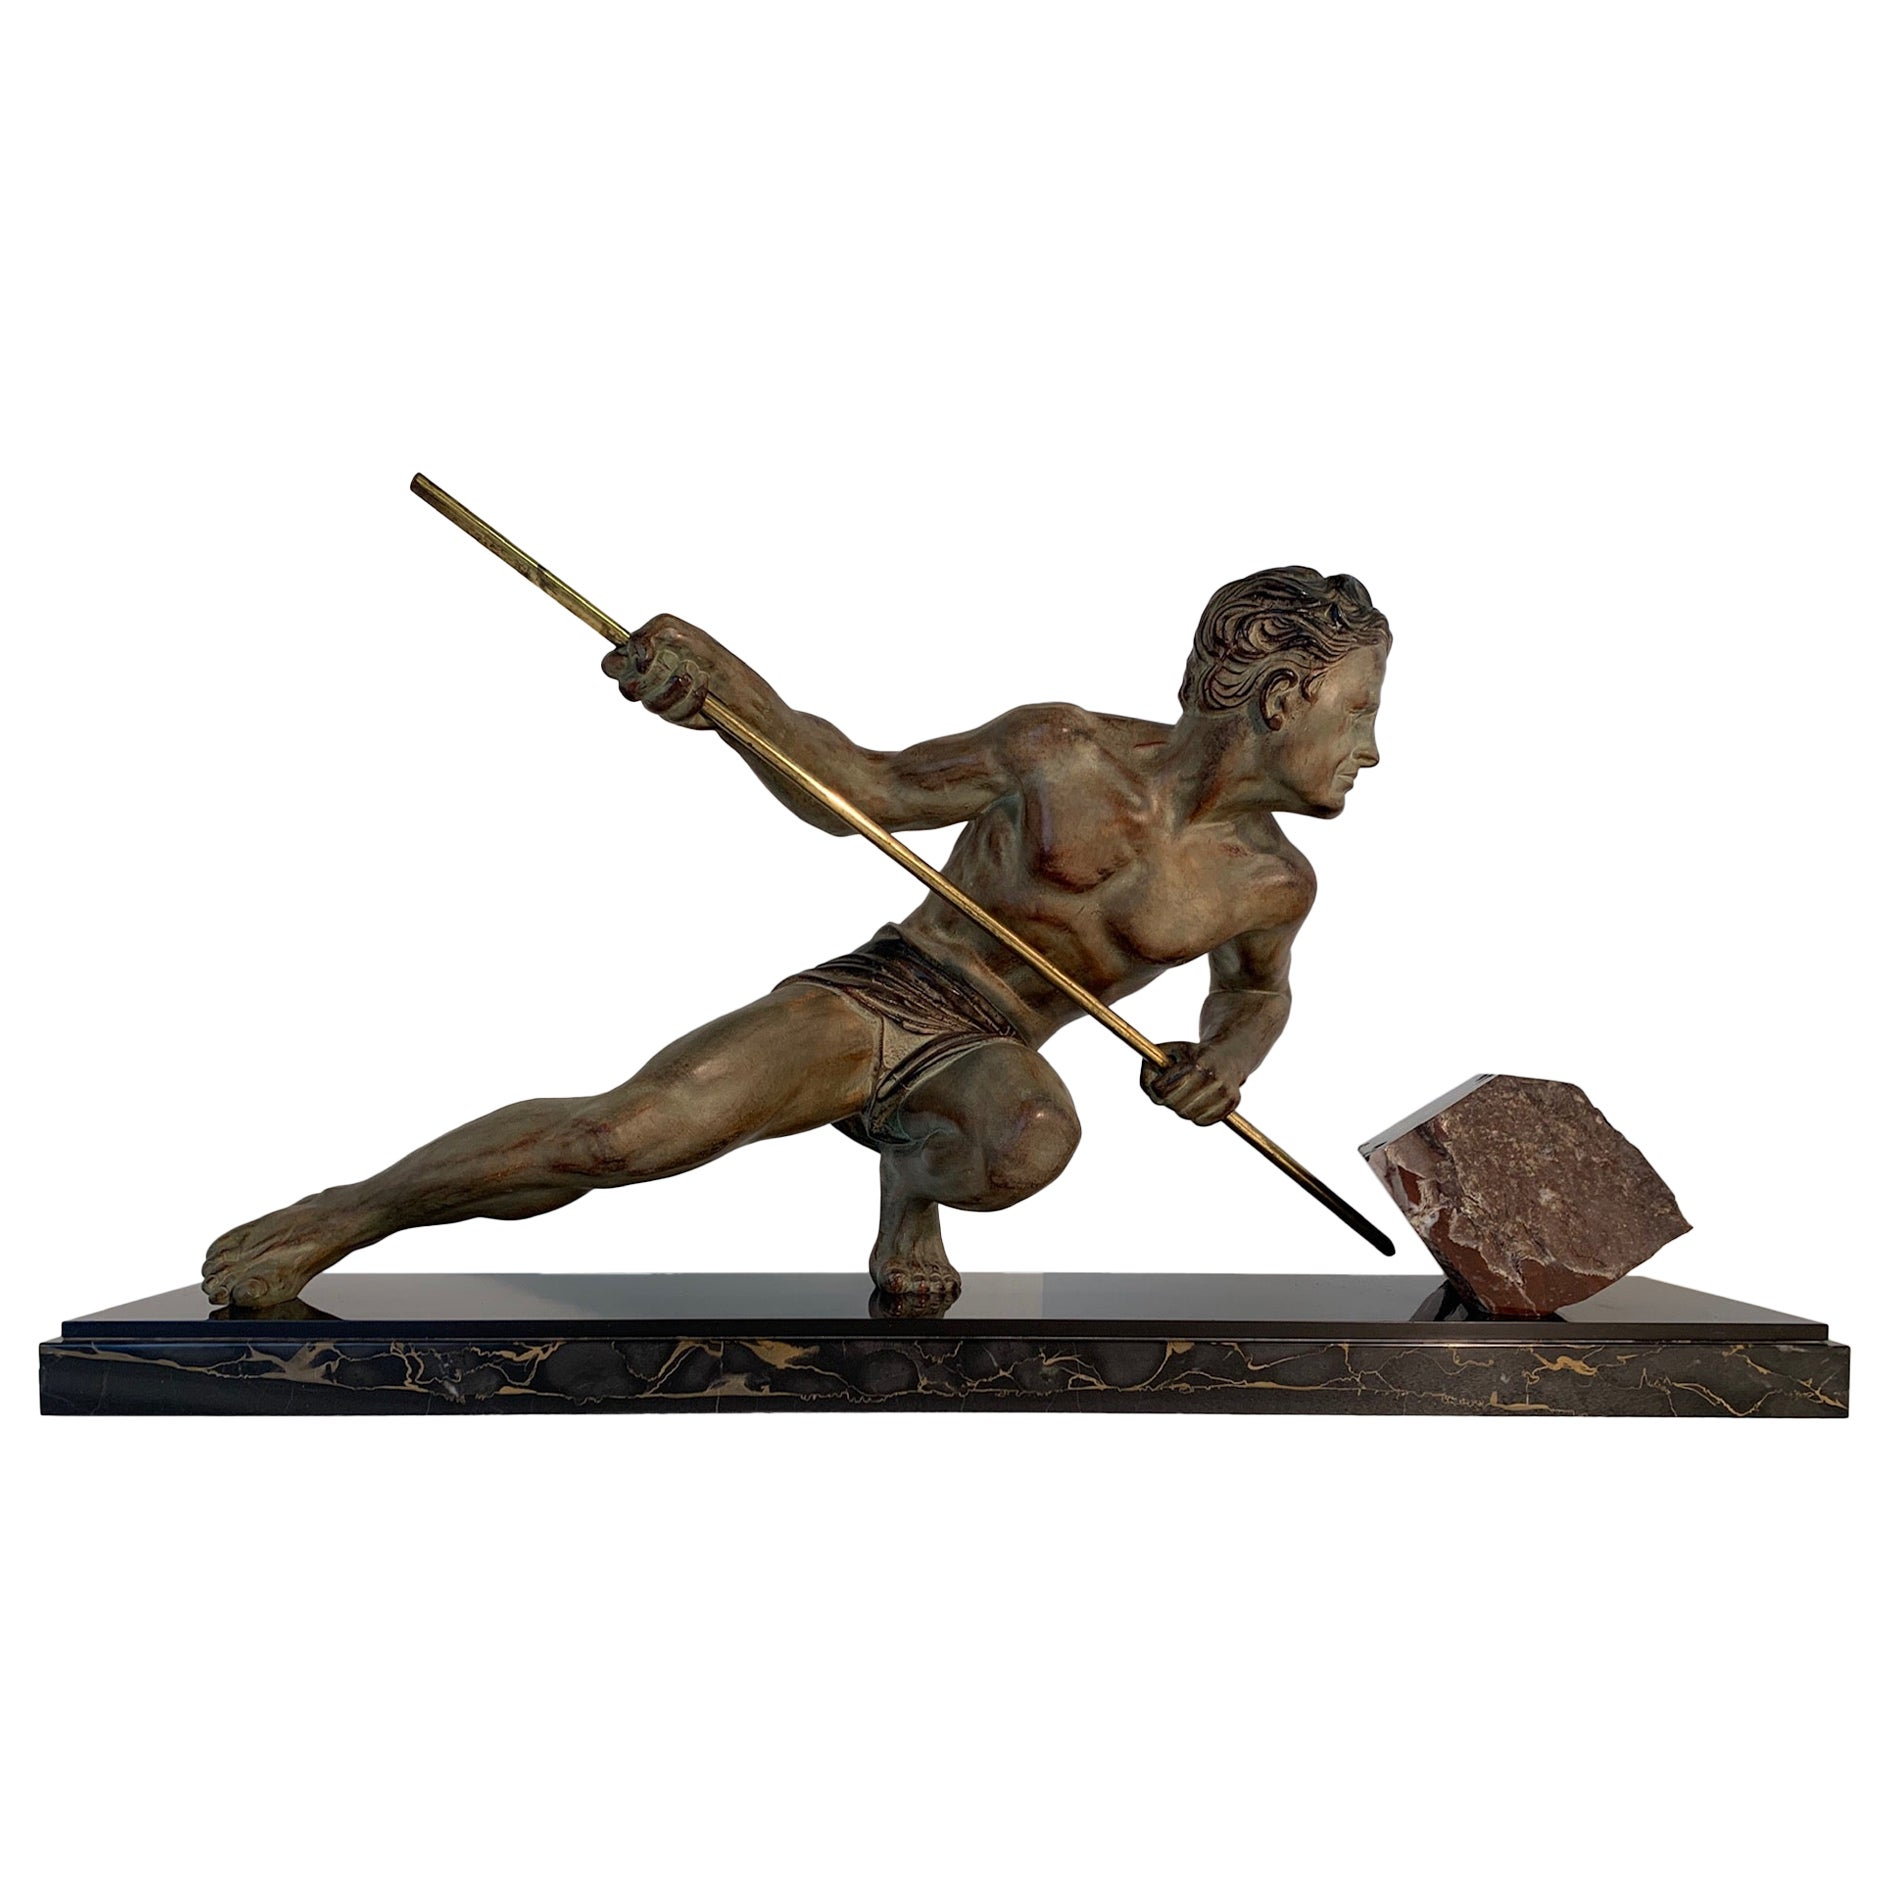 French Art Deco Sculpture by Guislain, 1930s